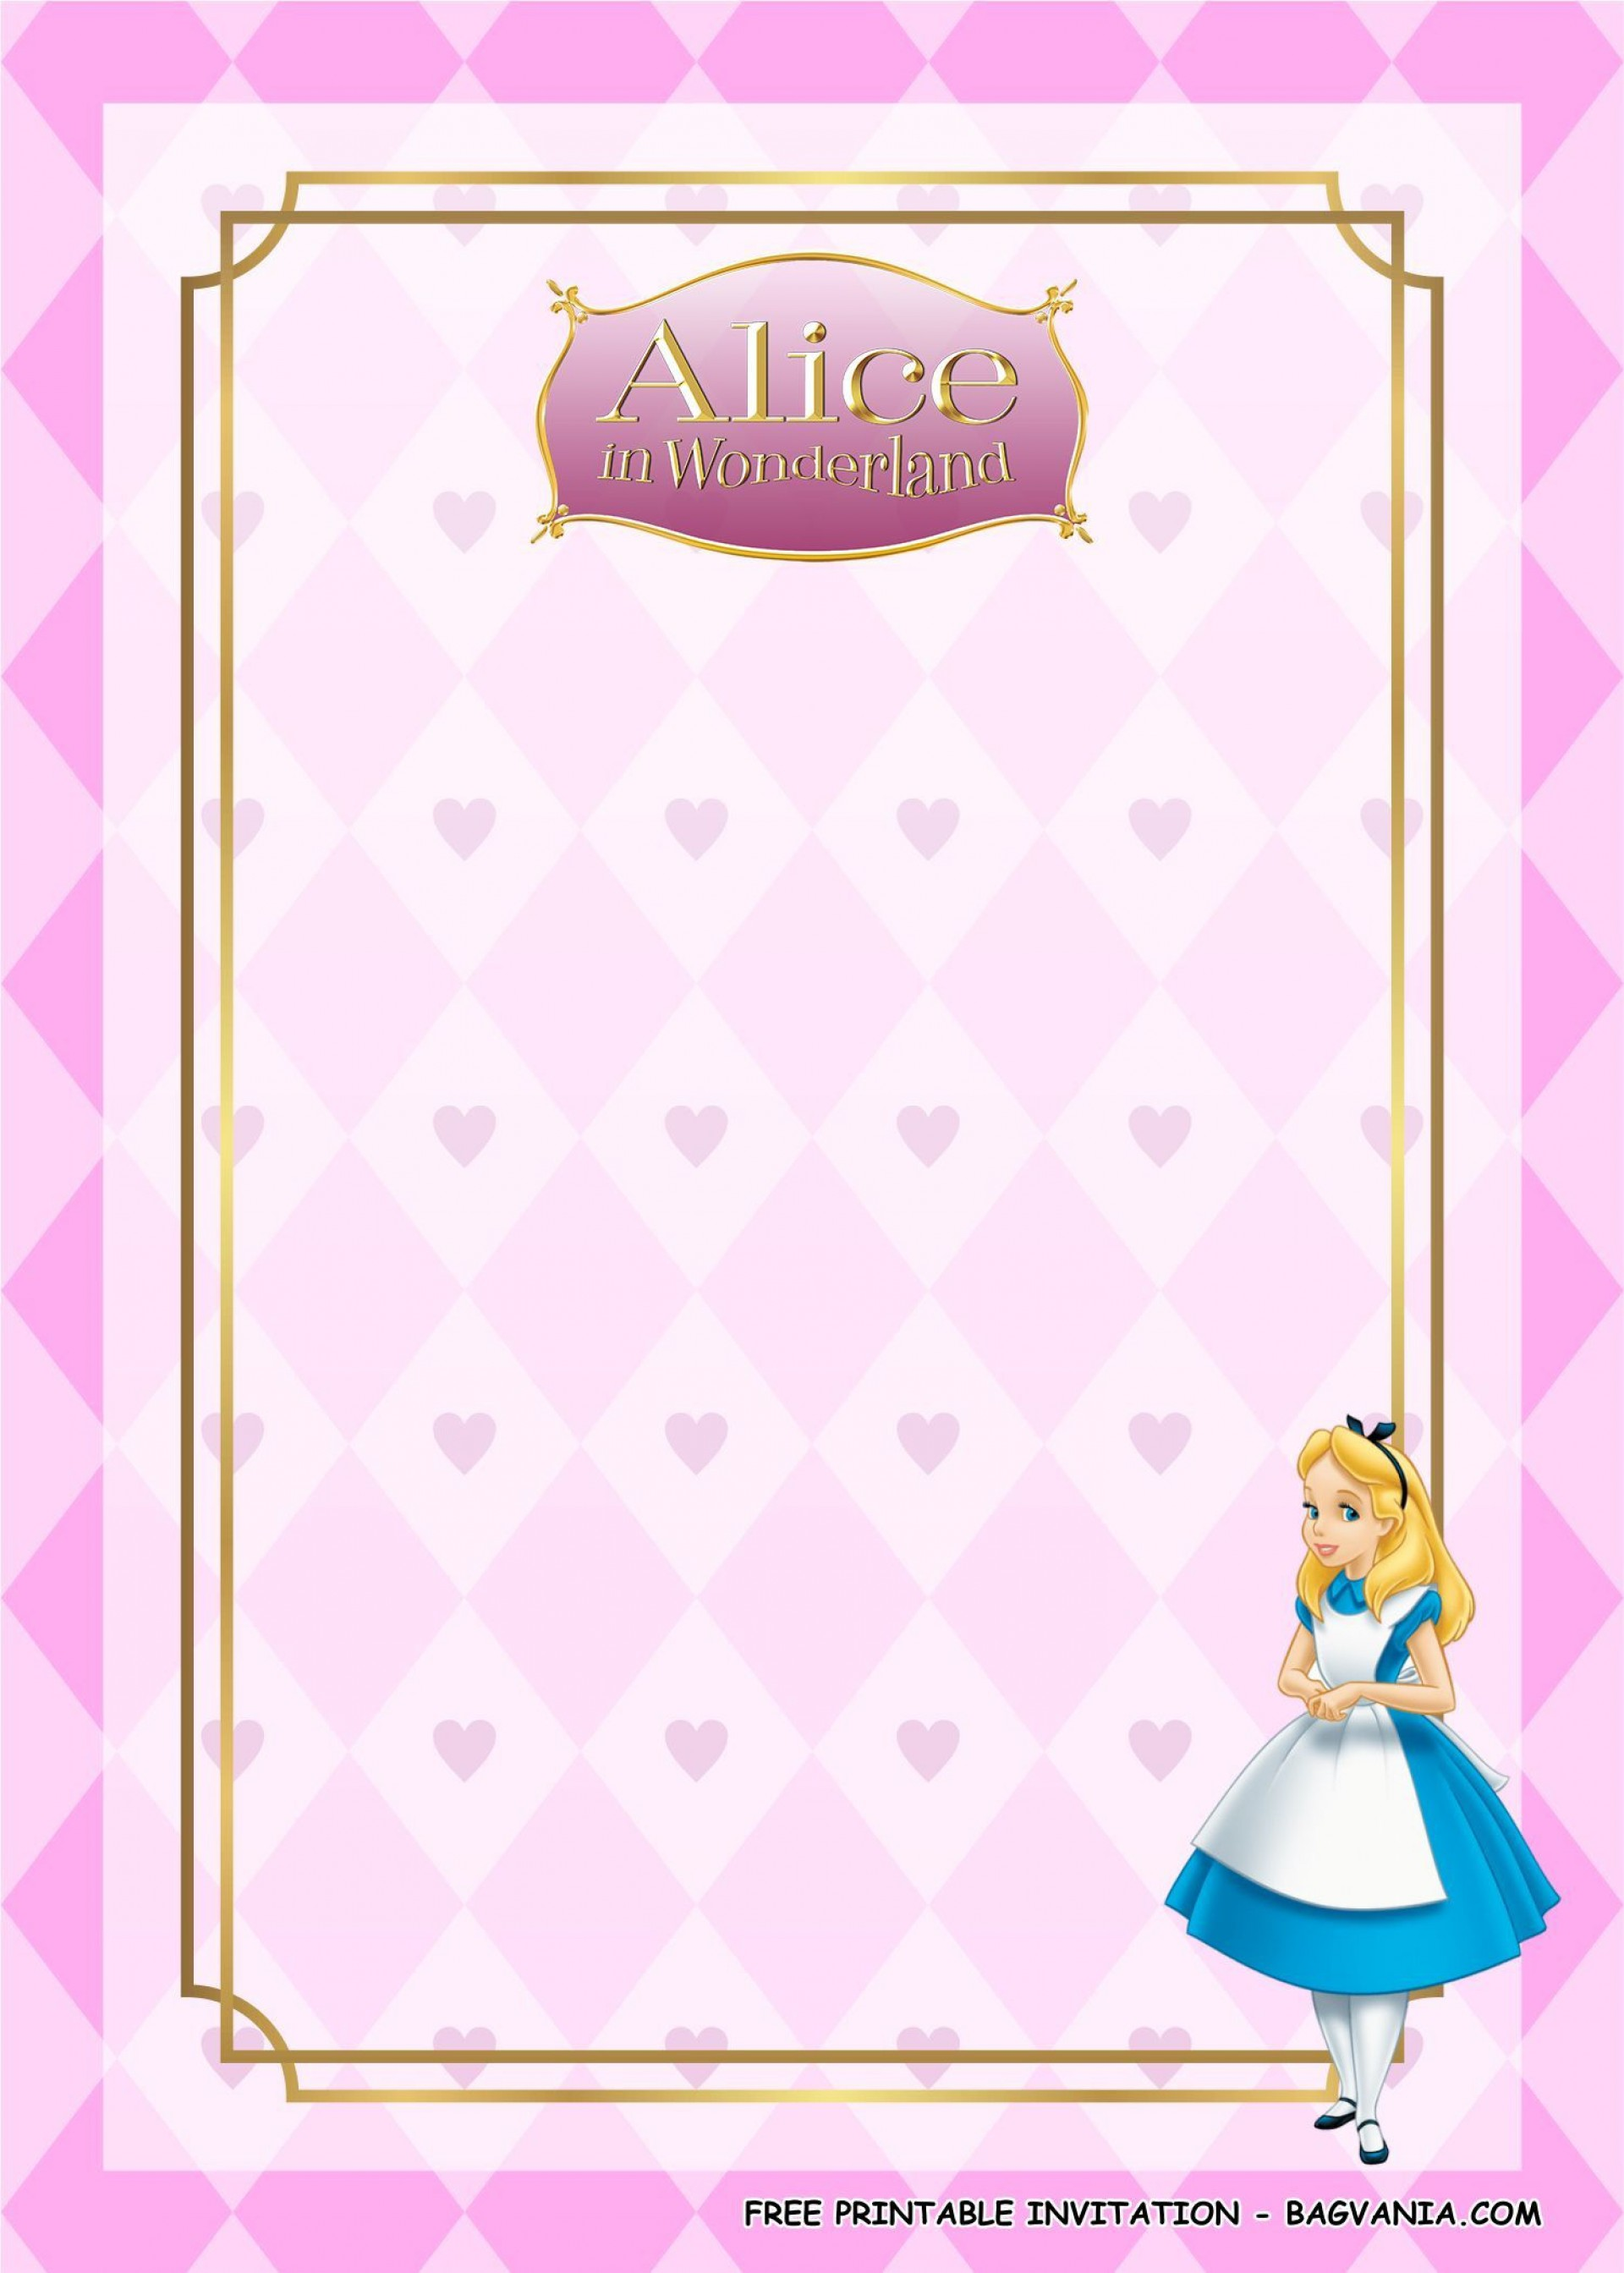 008 Stunning Alice In Wonderland Invitation Template Example  Templates Birthday Free Wedding Wording Download1920